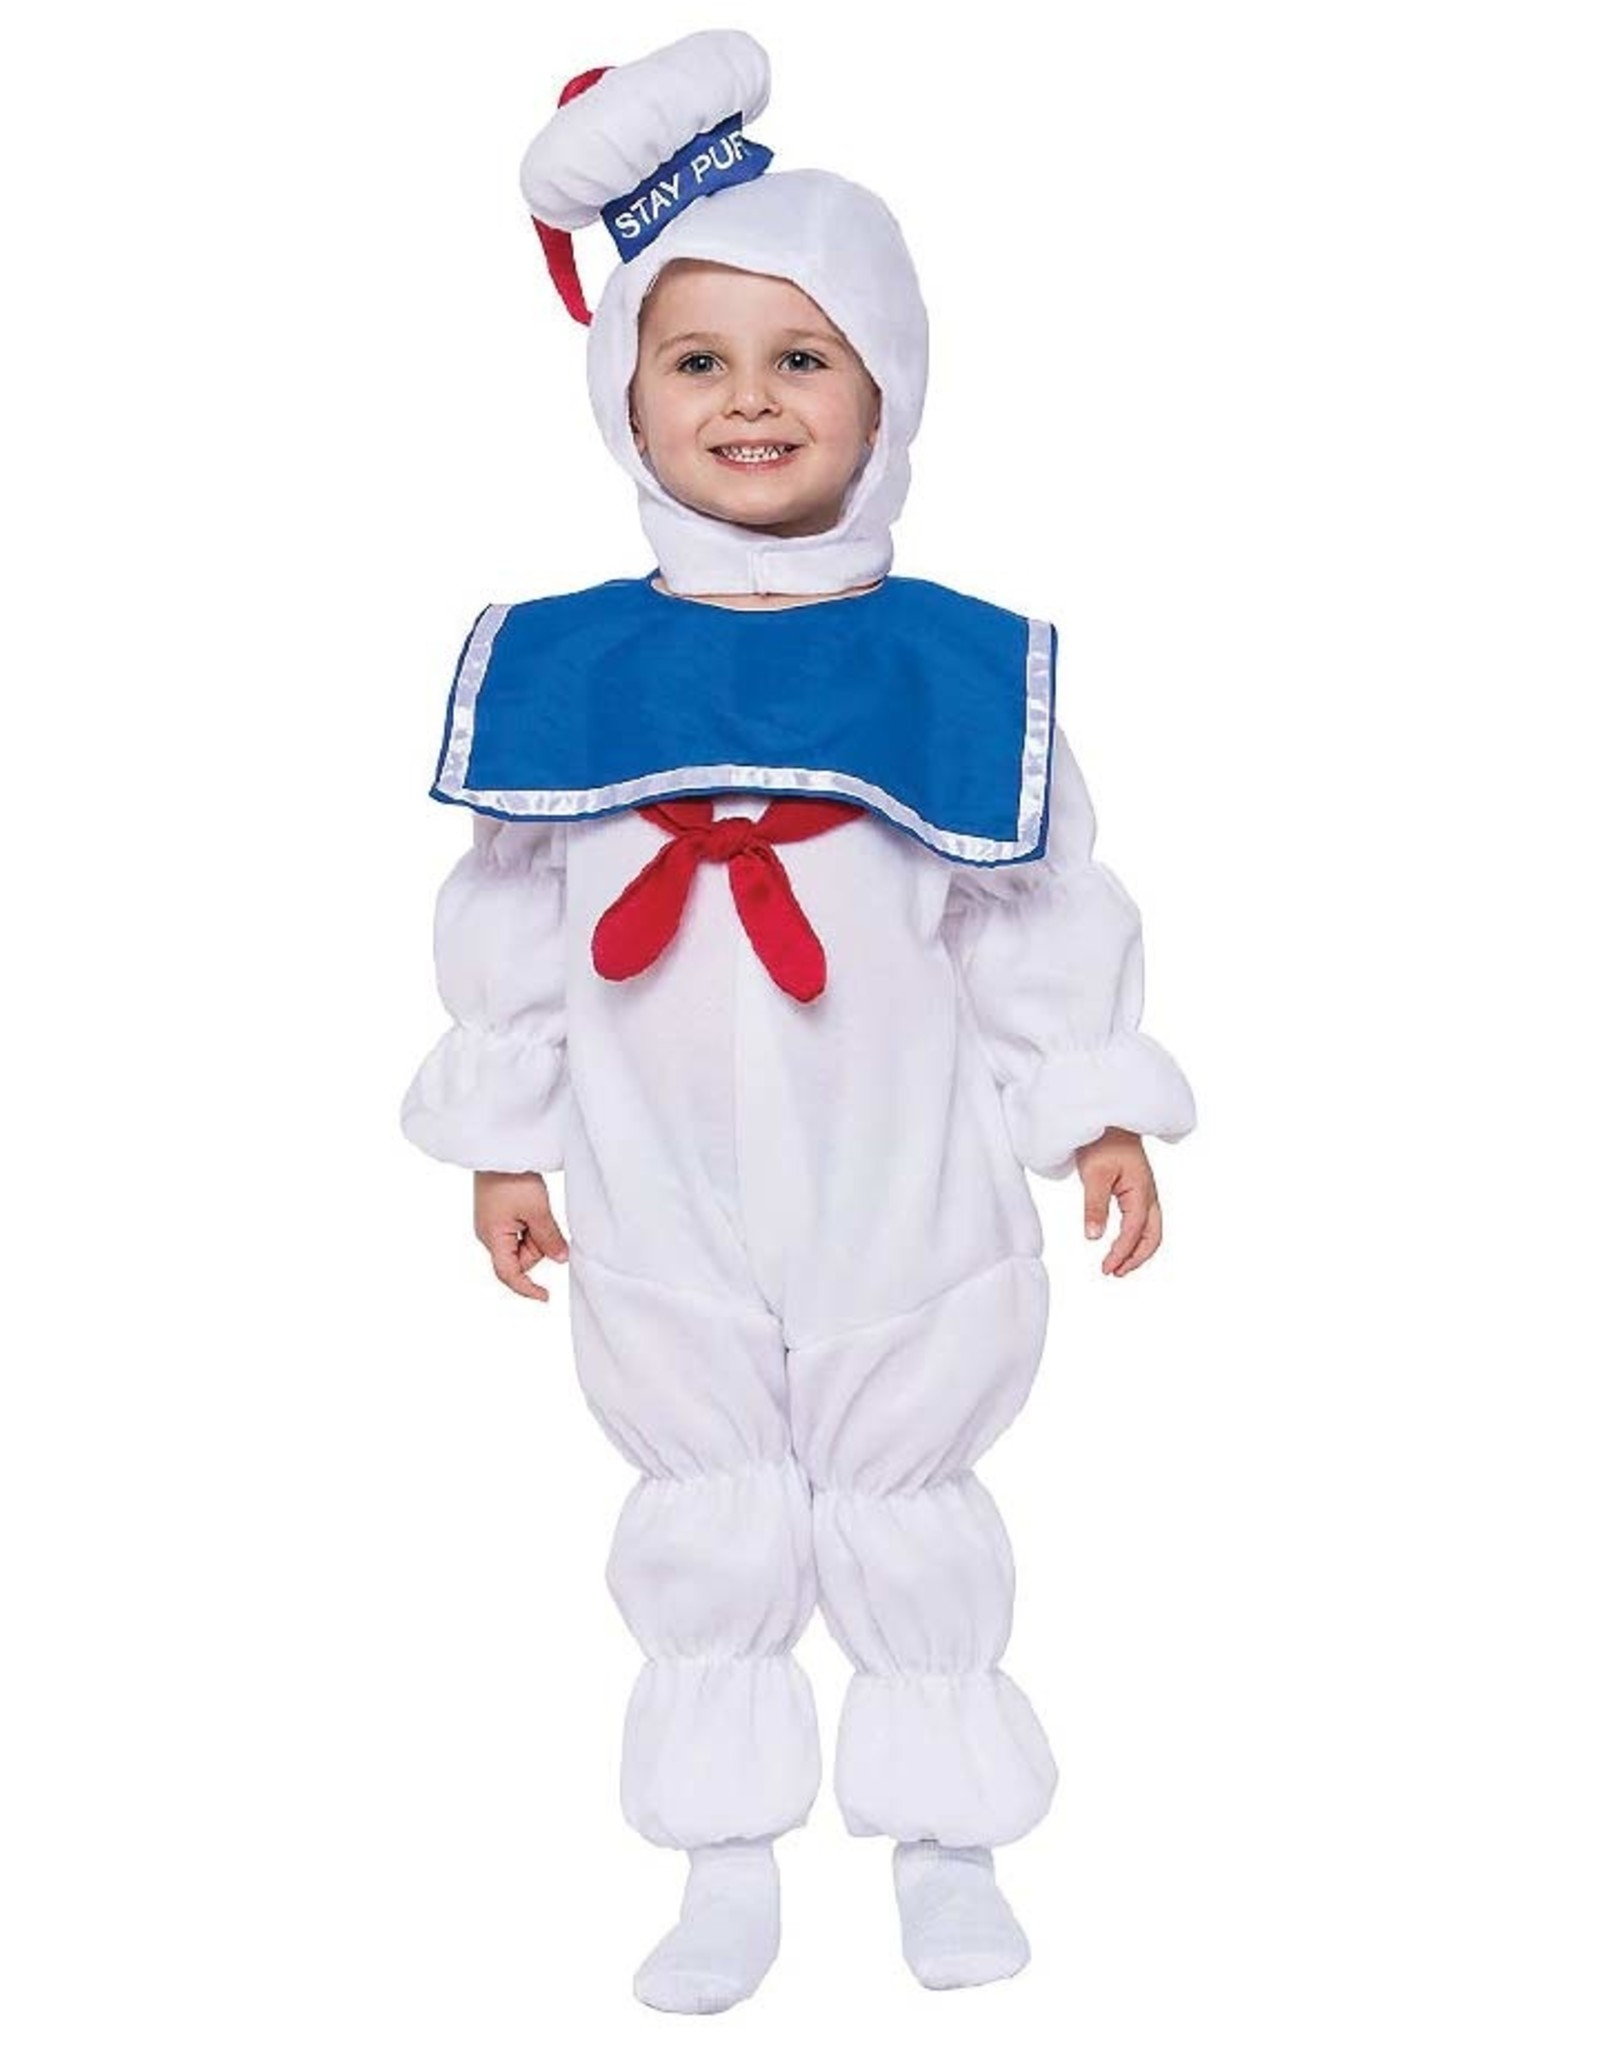 Stay-Puft Marshmallow Man Costume - Toddler